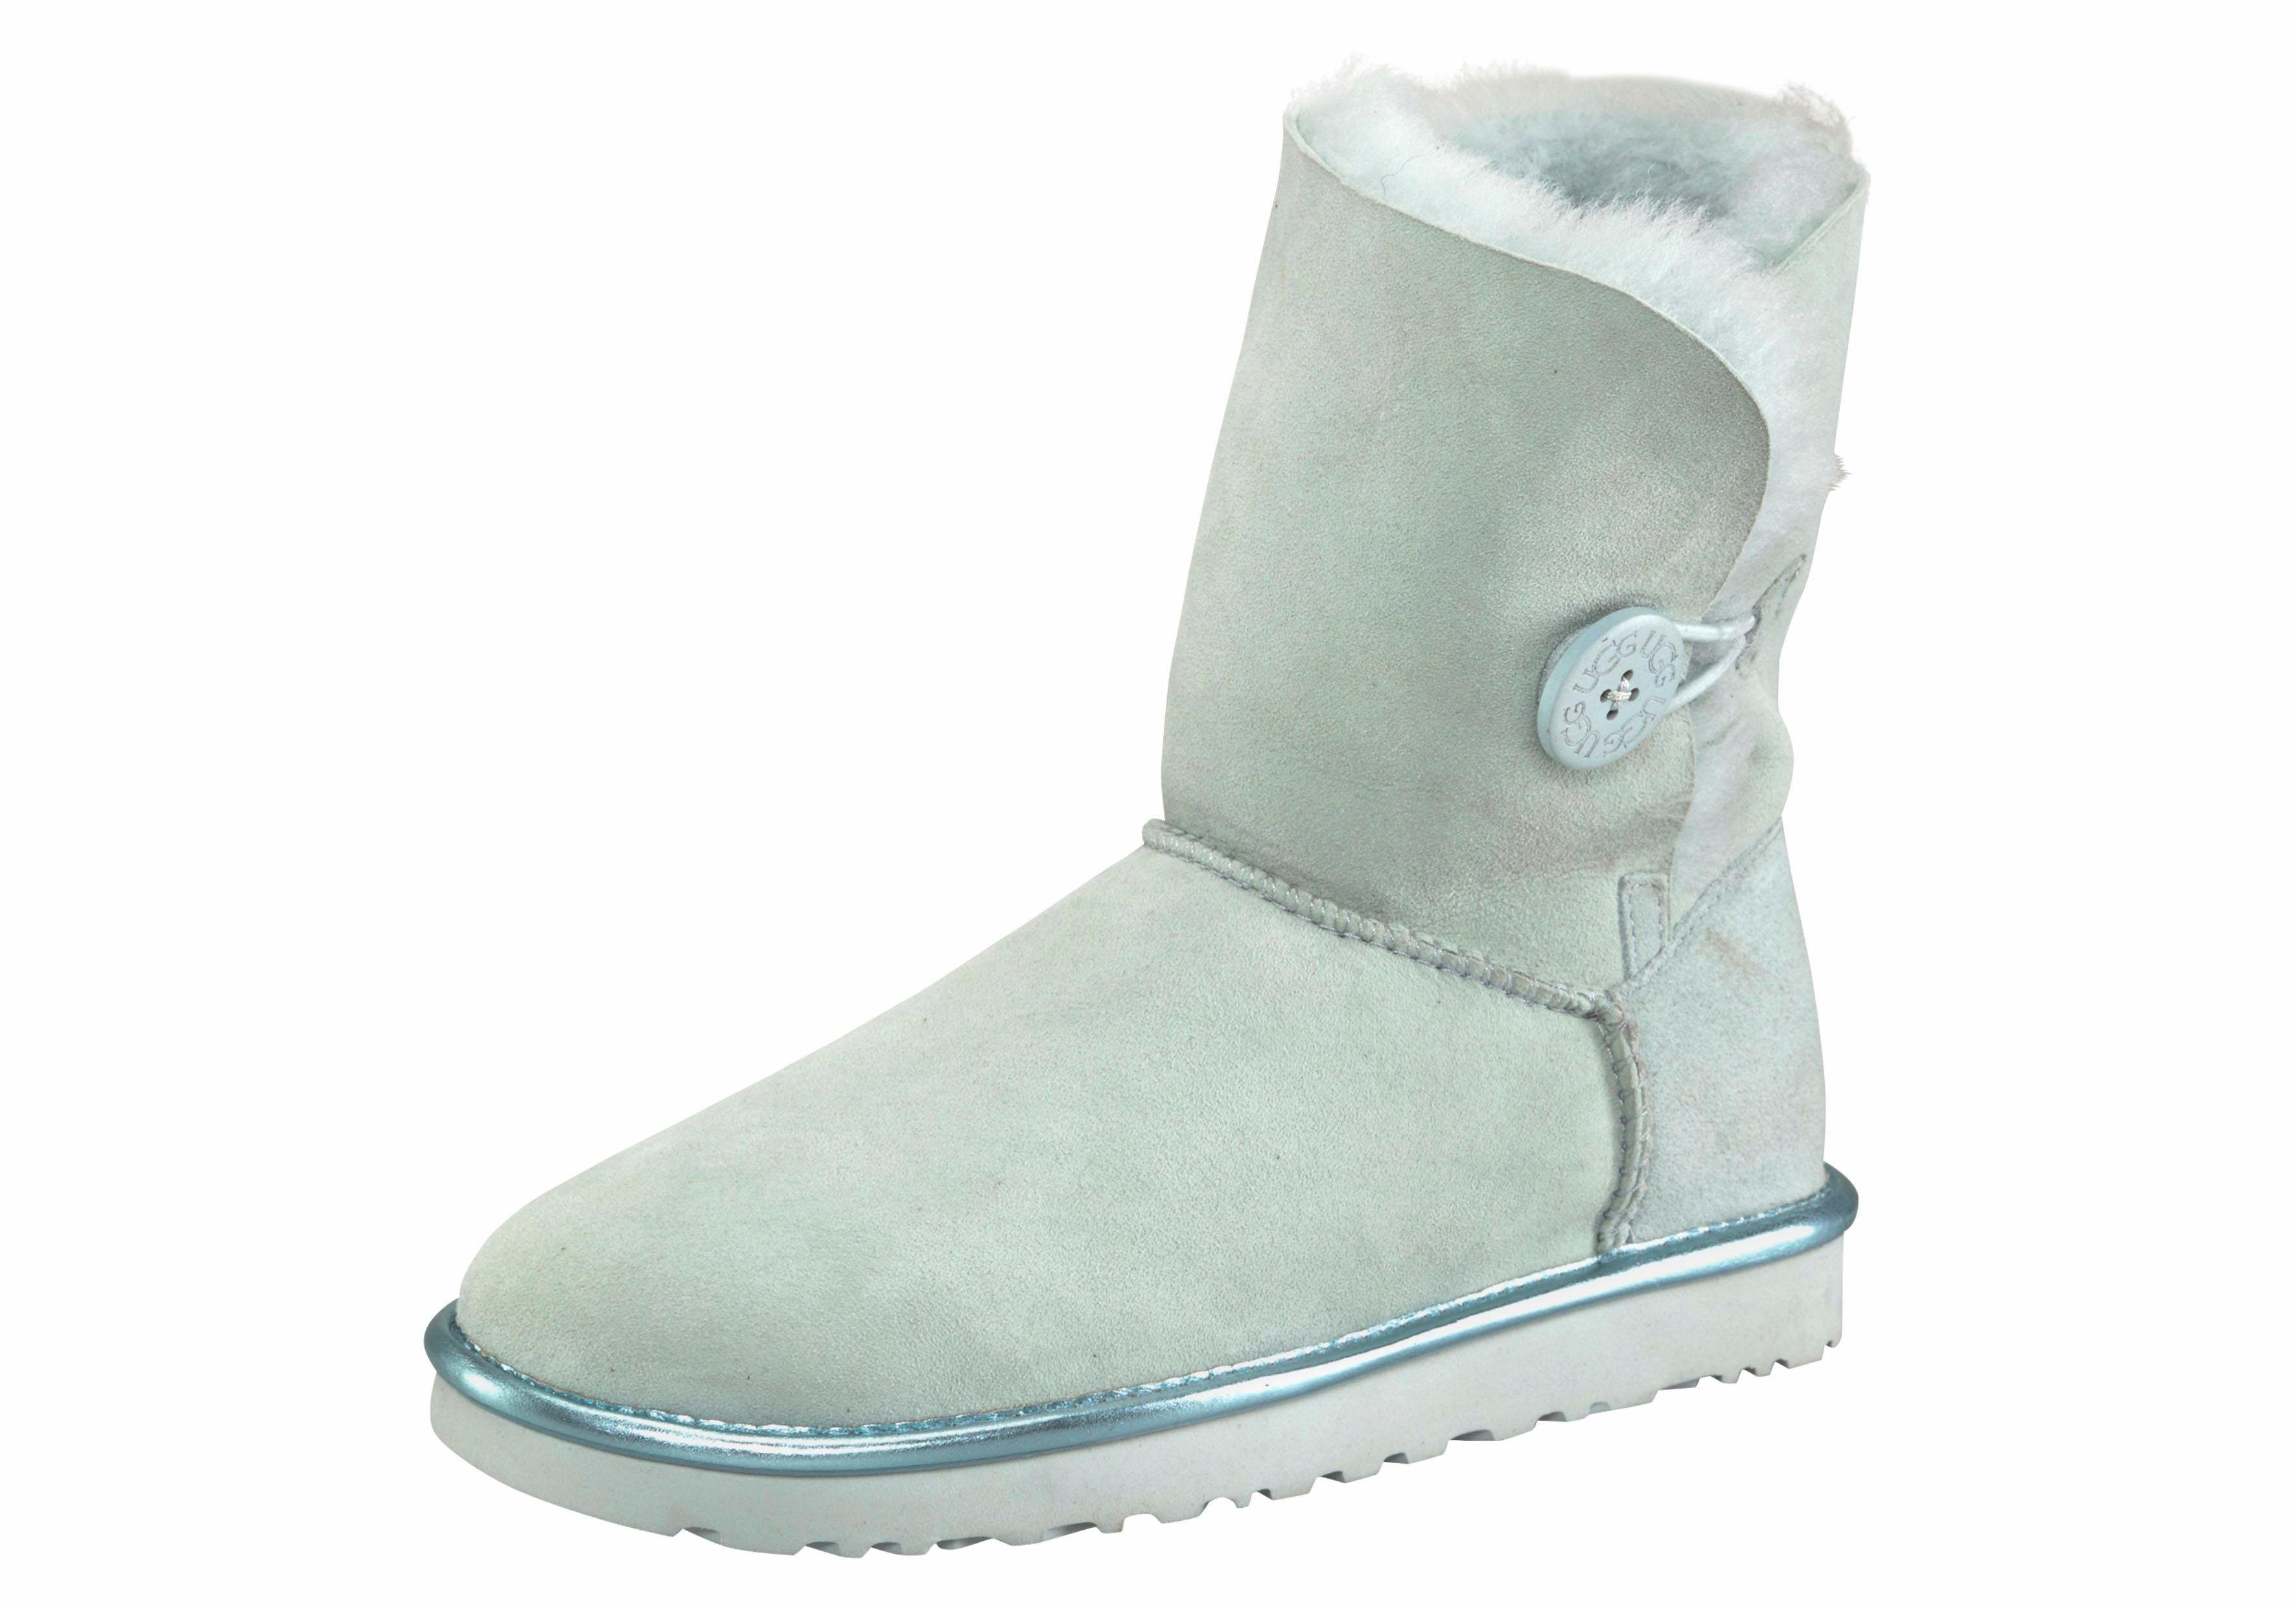 UGG »Bailey Button 2 Metallic« Winterboots mit dekorativem Knopf und Metallic Detail online kaufen | OTTO